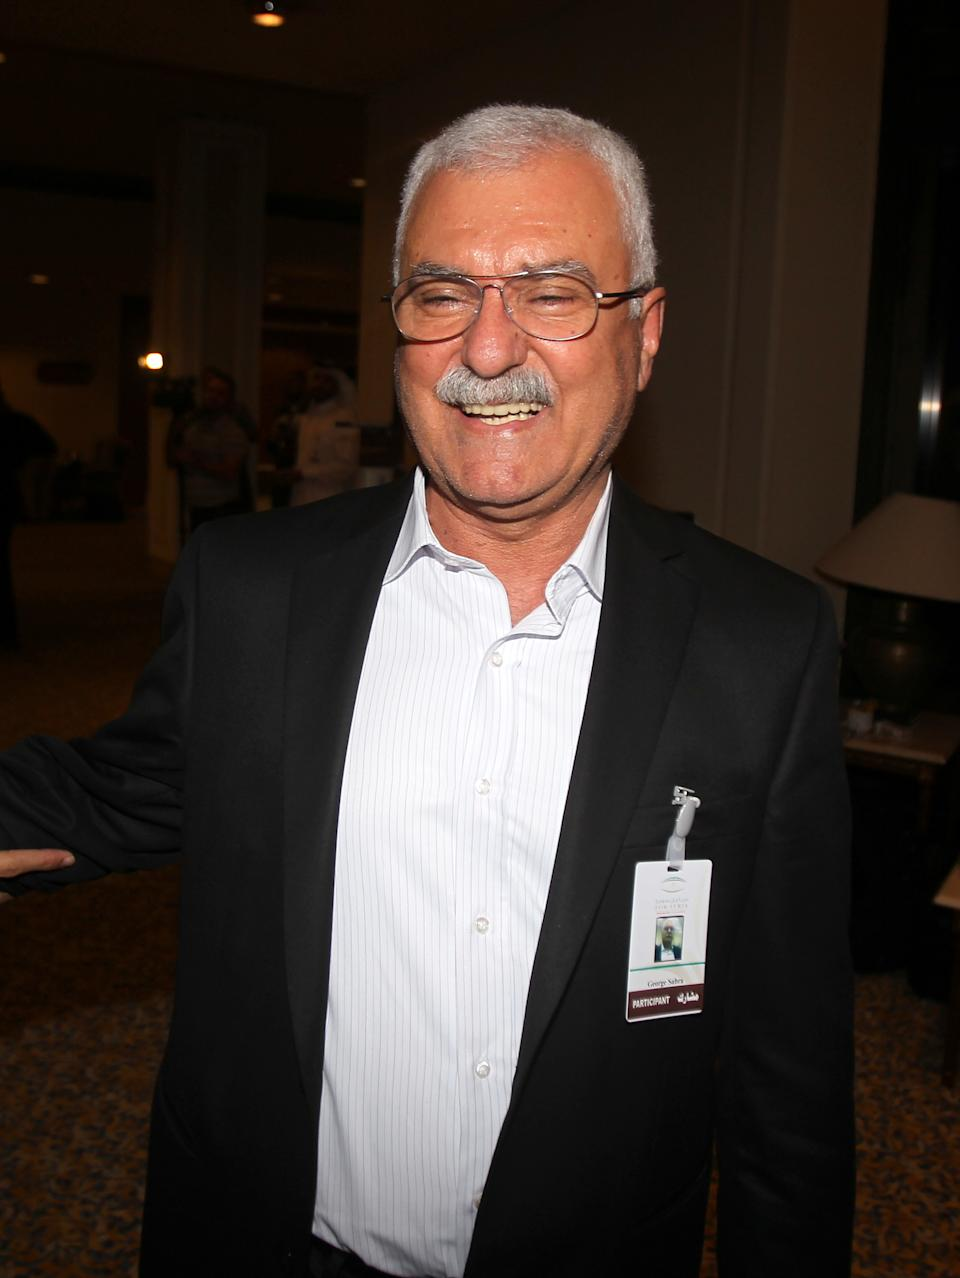 Council member George Sabra arrives at the meeting of the General Assembly of the Syrian National Council in Doha, Qatar,Thursday, Nov. 8, 2012. (AP Photo/Osama Faisal)